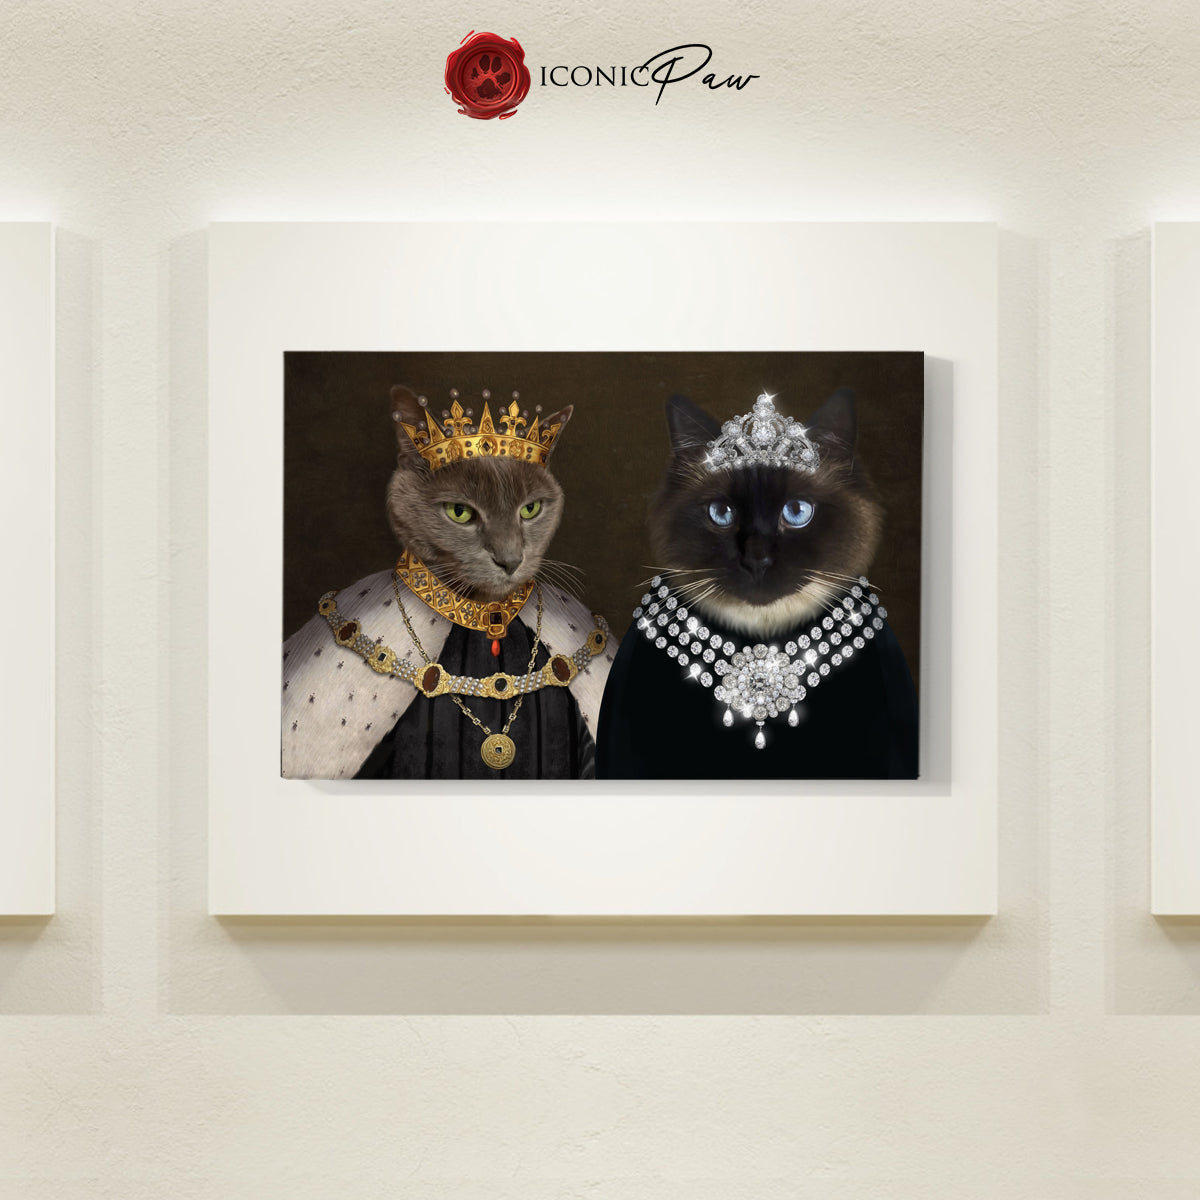 Crowned King & The Lady 2 Pets in 1 Canvas - Pet Portraits